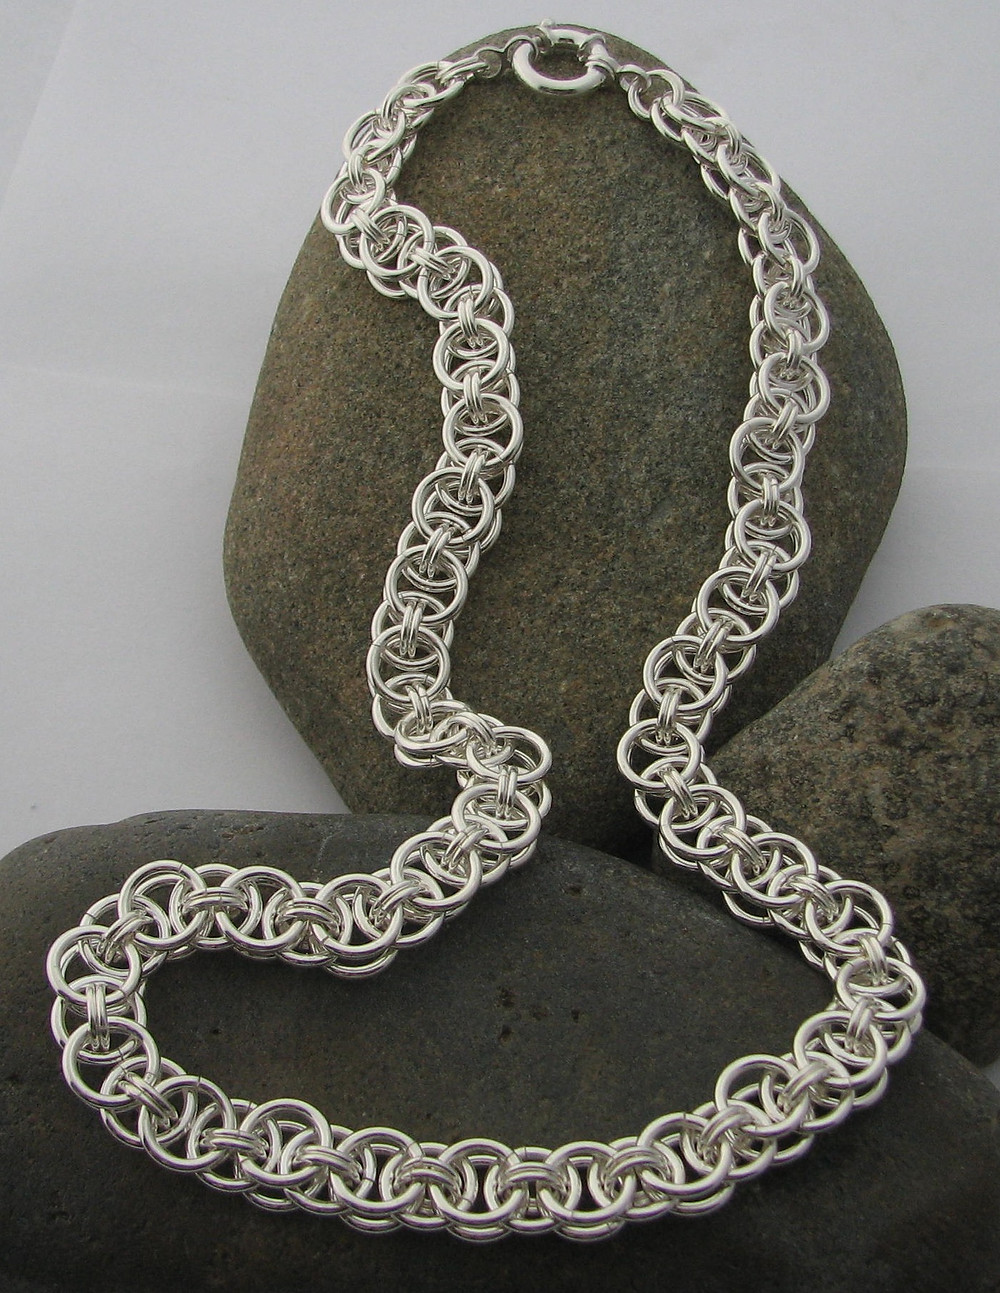 Helmsweave chainmail sterling silver necklace